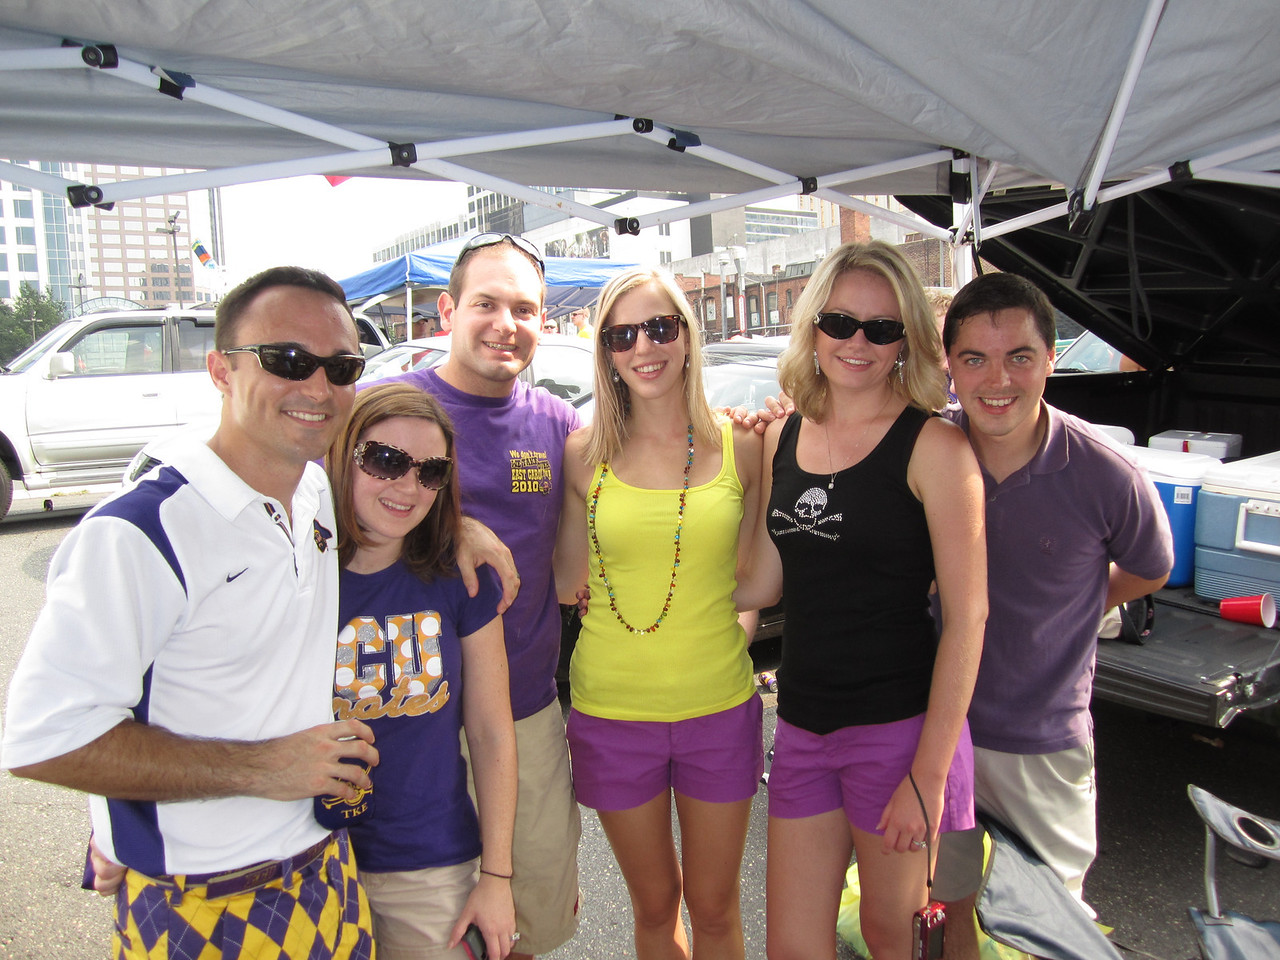 9/3/2011 ECU vs South Carolina  Chris, Heather, Jon, Erin, Brittany, Kevin